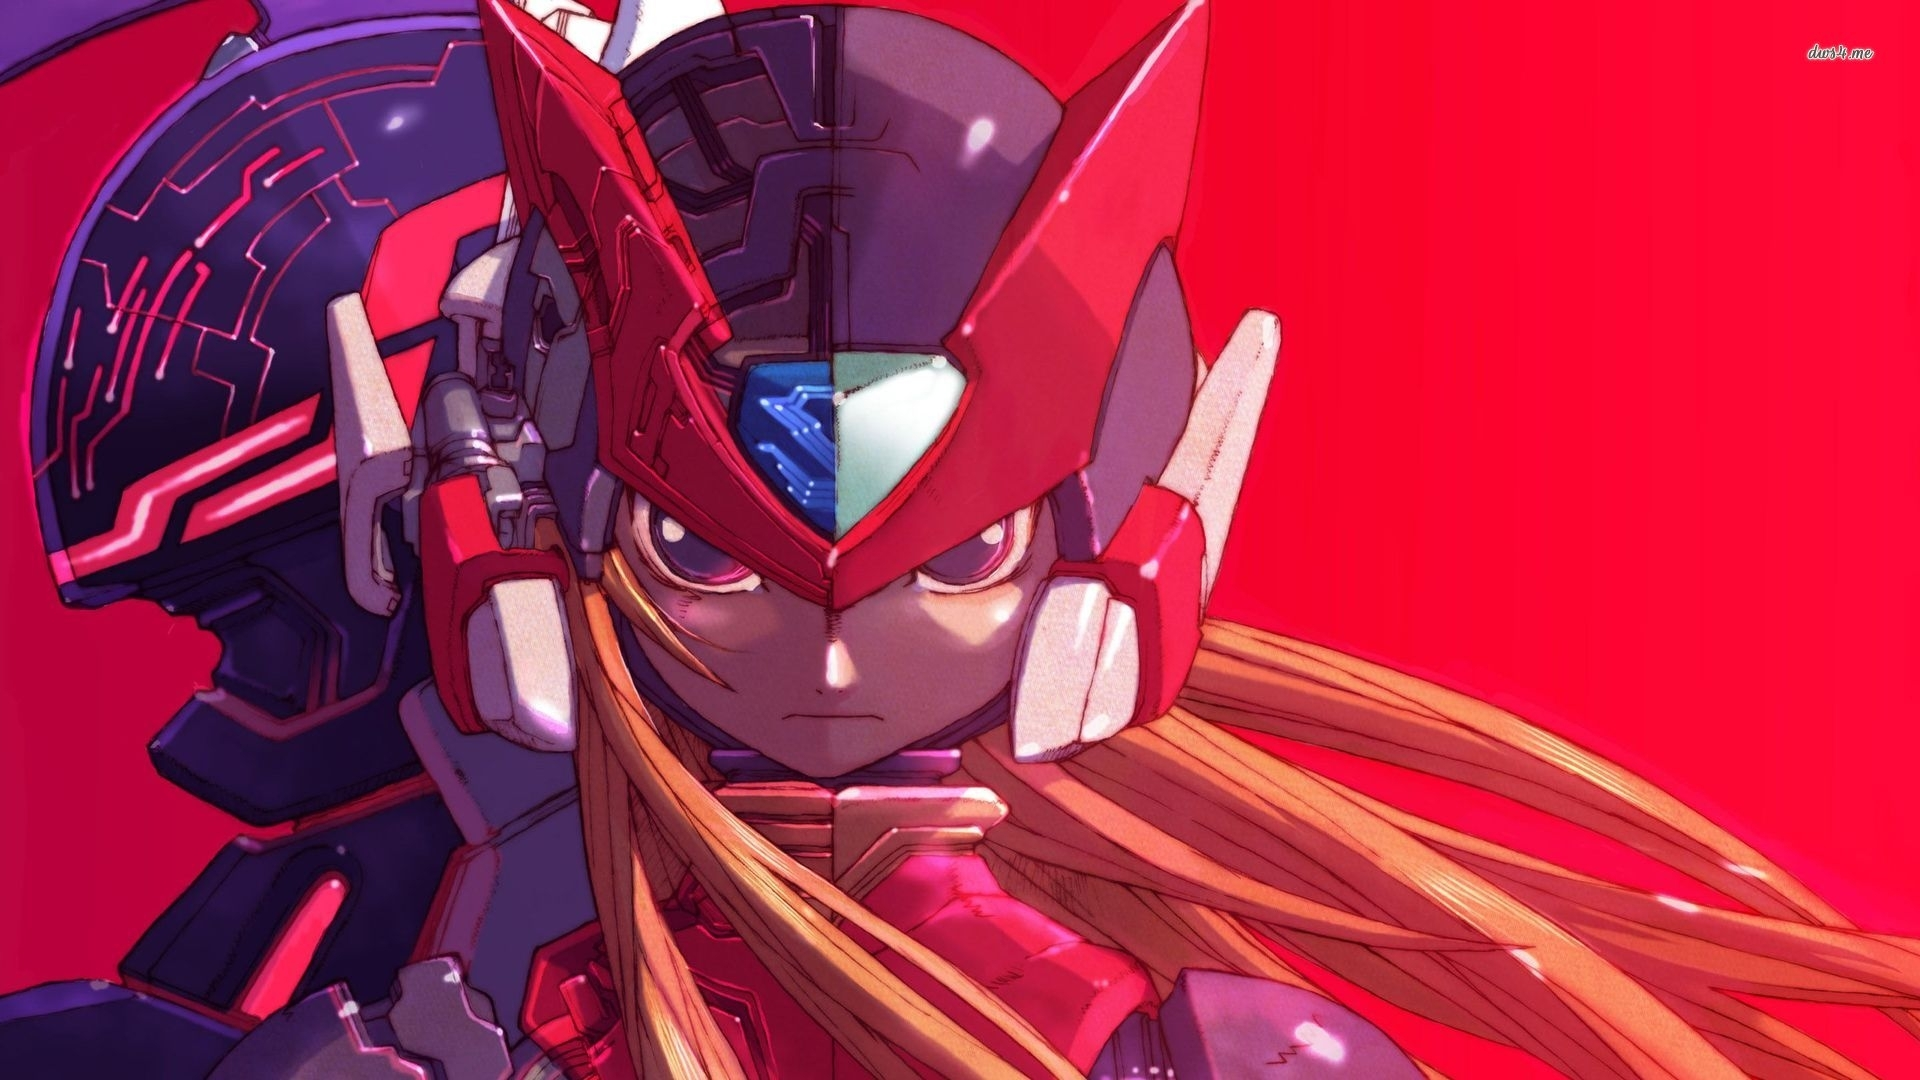 3 mega man zero collection hd wallpapers | background images